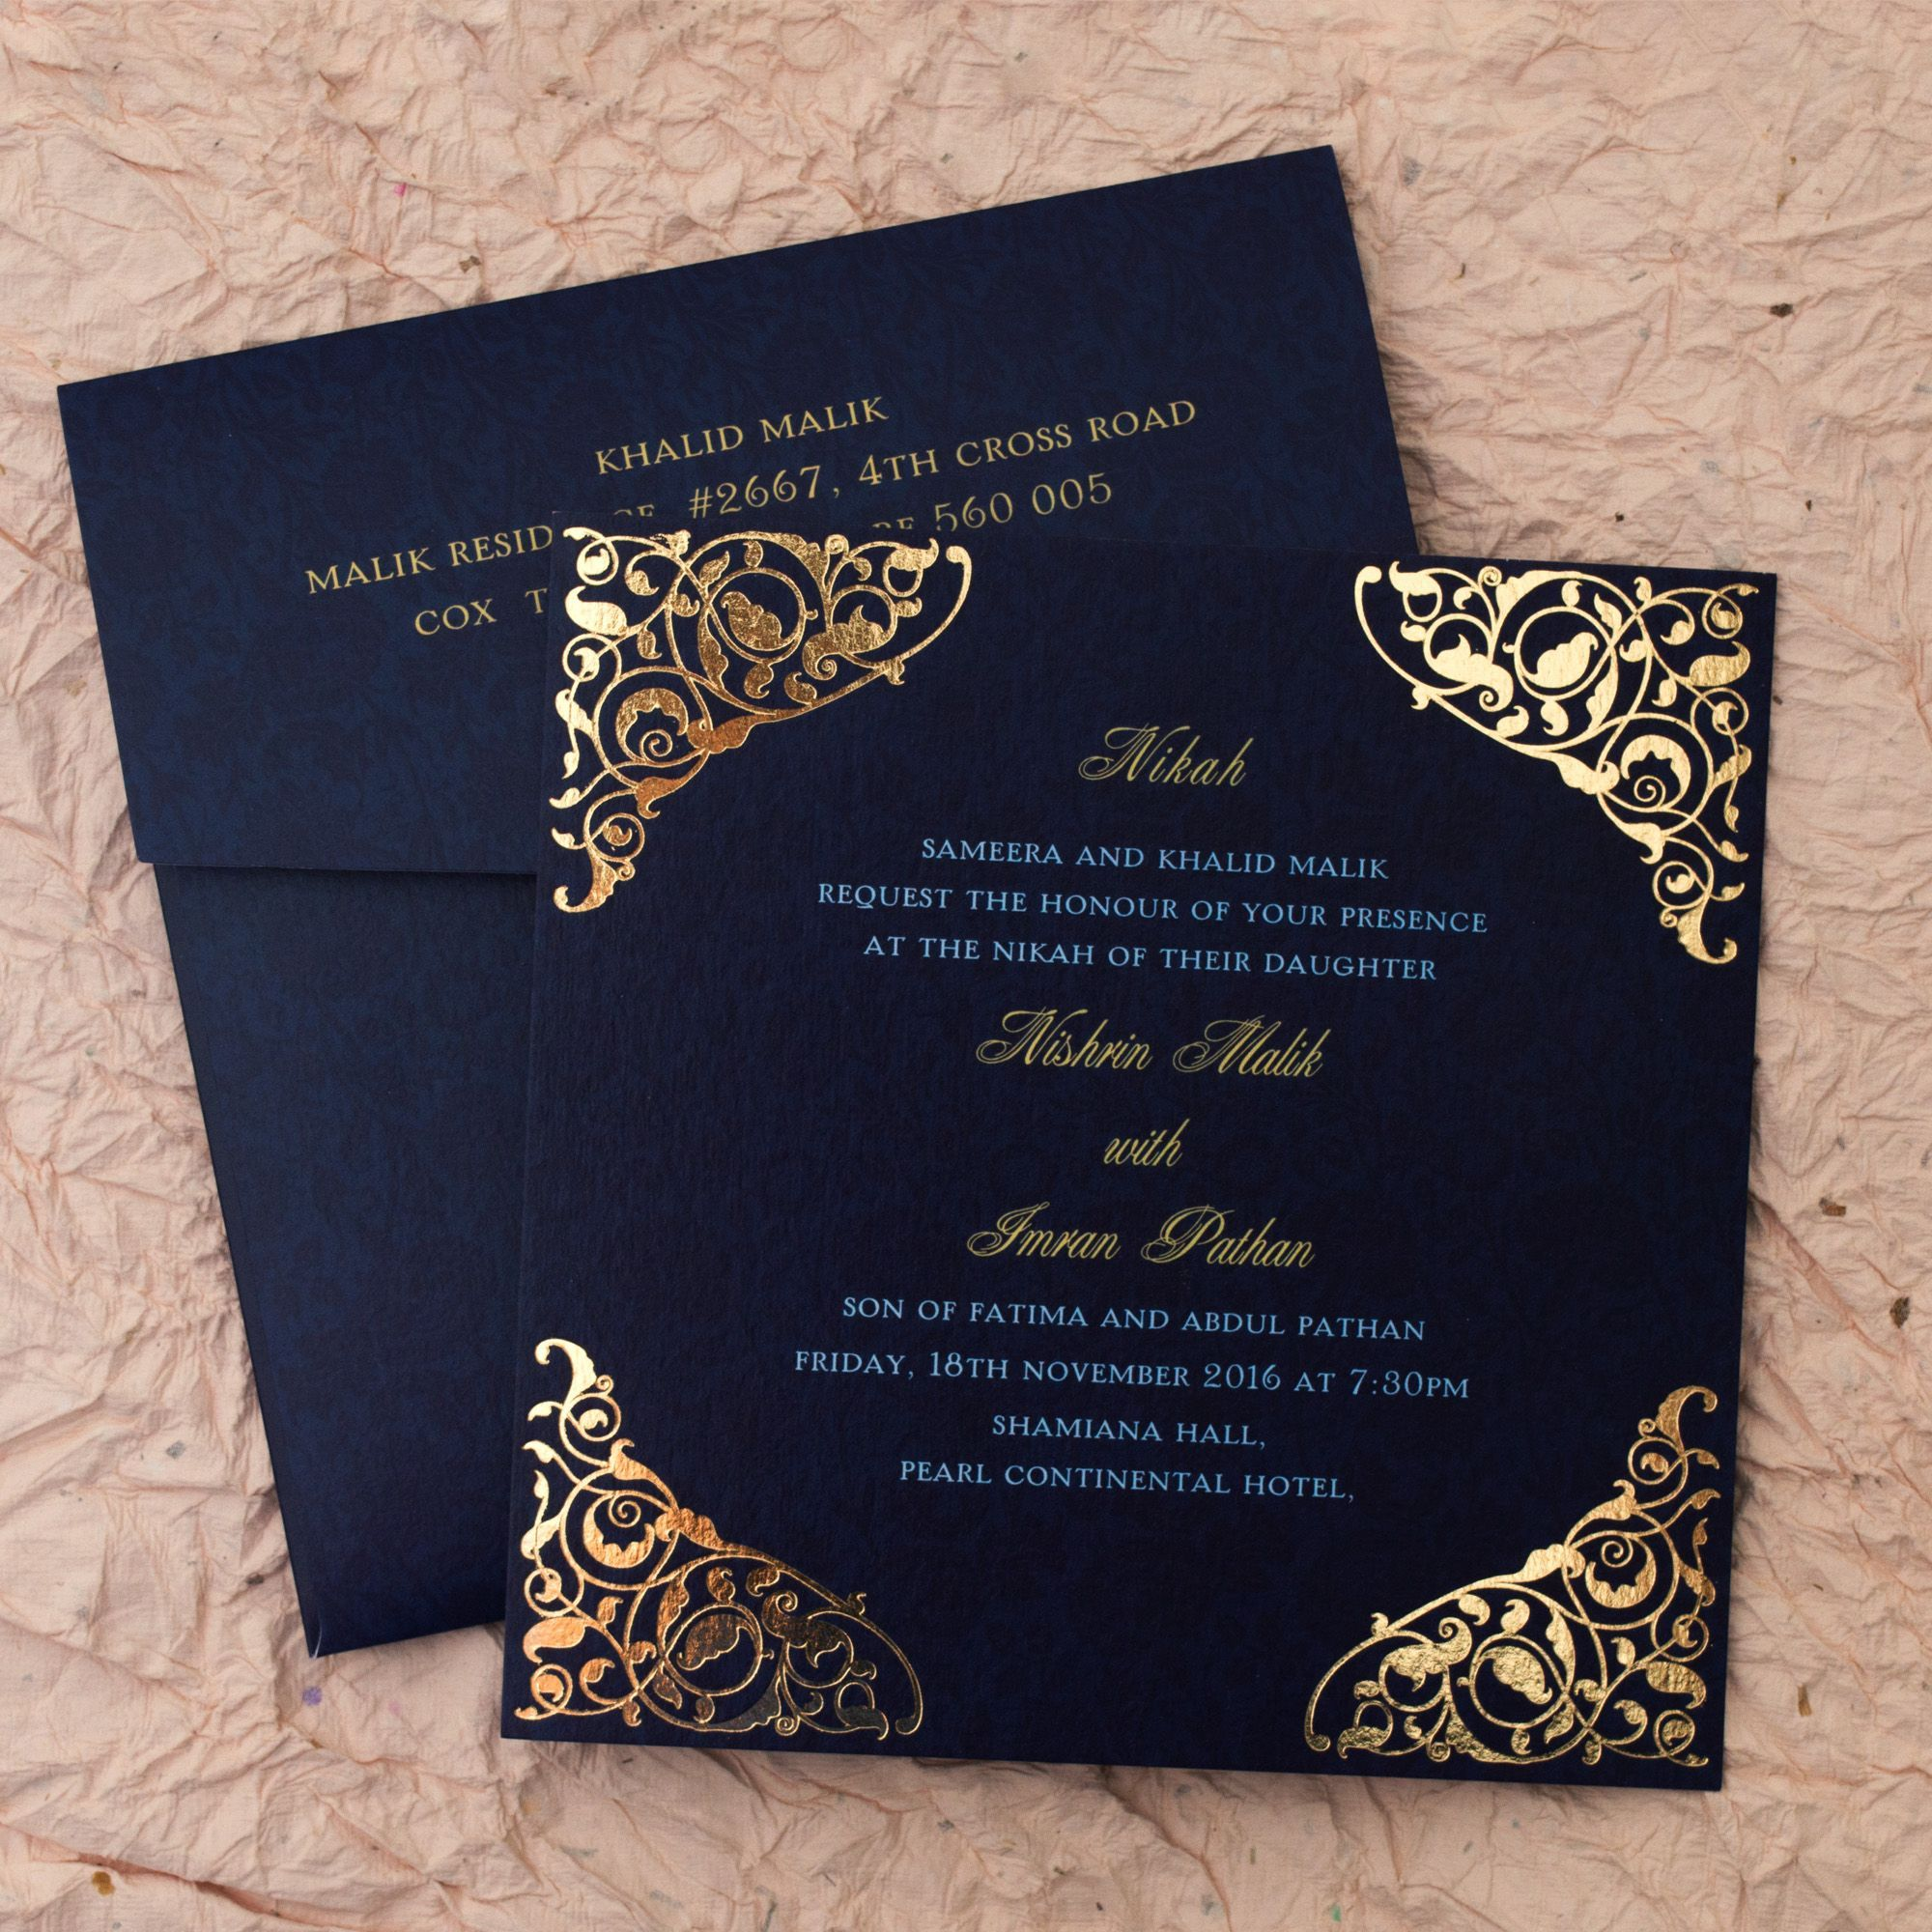 Pin By Wilai Suksasanee On Wedding Invitation Cards Muslim Wedding Invitations Indian Wedding Invitation Cards Wedding Invitation Card Design